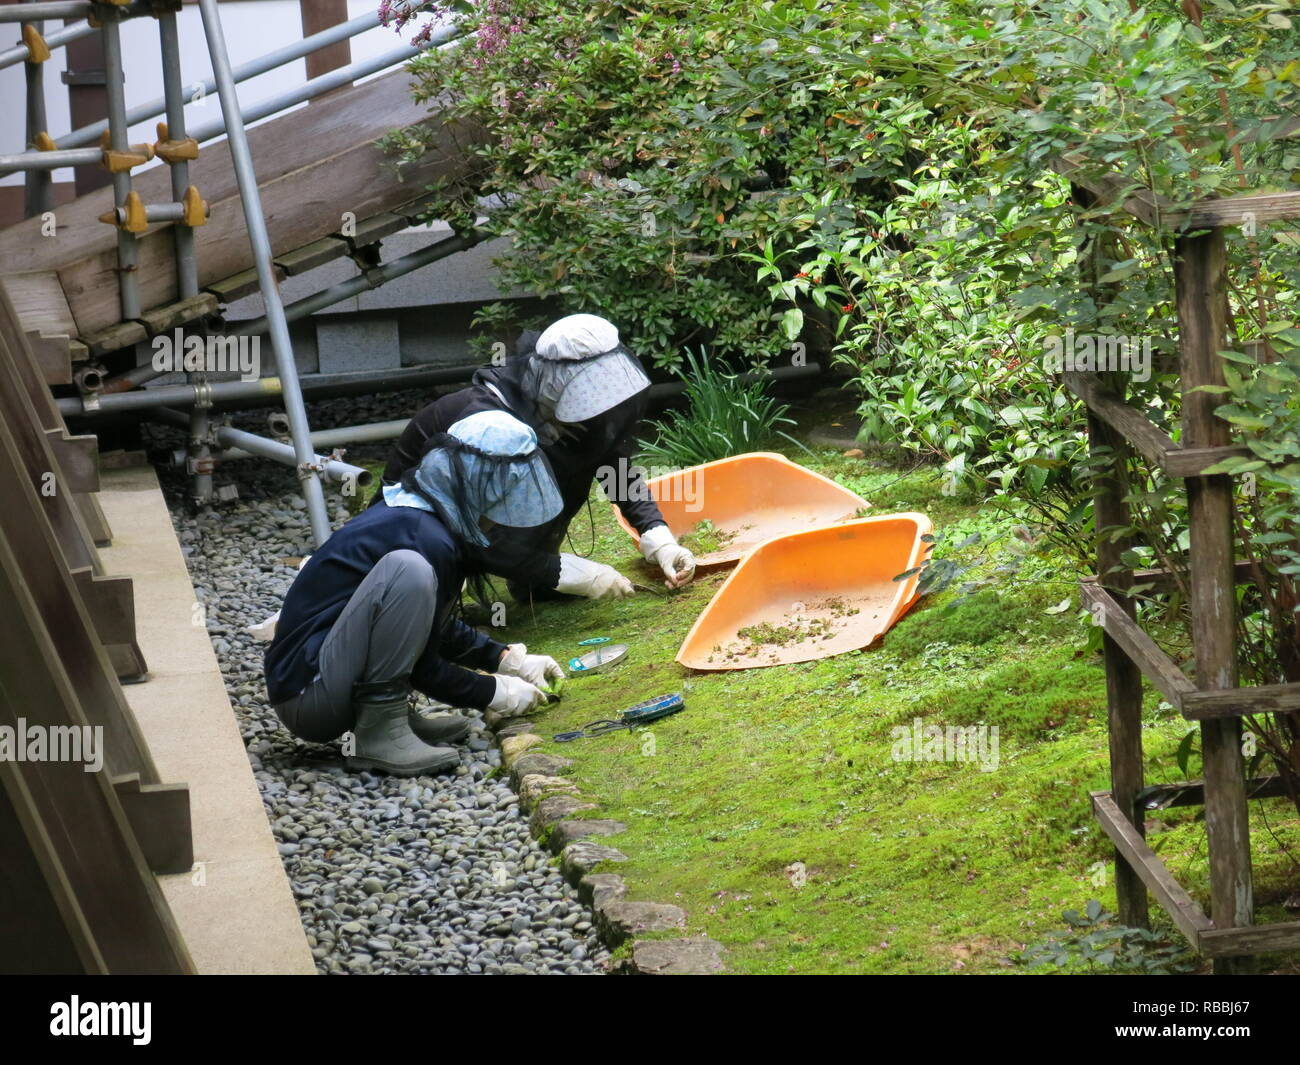 Two Japanese gardeners wearing gardening clothes and headgear, are meticulous in tidying the moss and stones in a garden at Ryoan-ji Temple, Kyoto - Stock Image